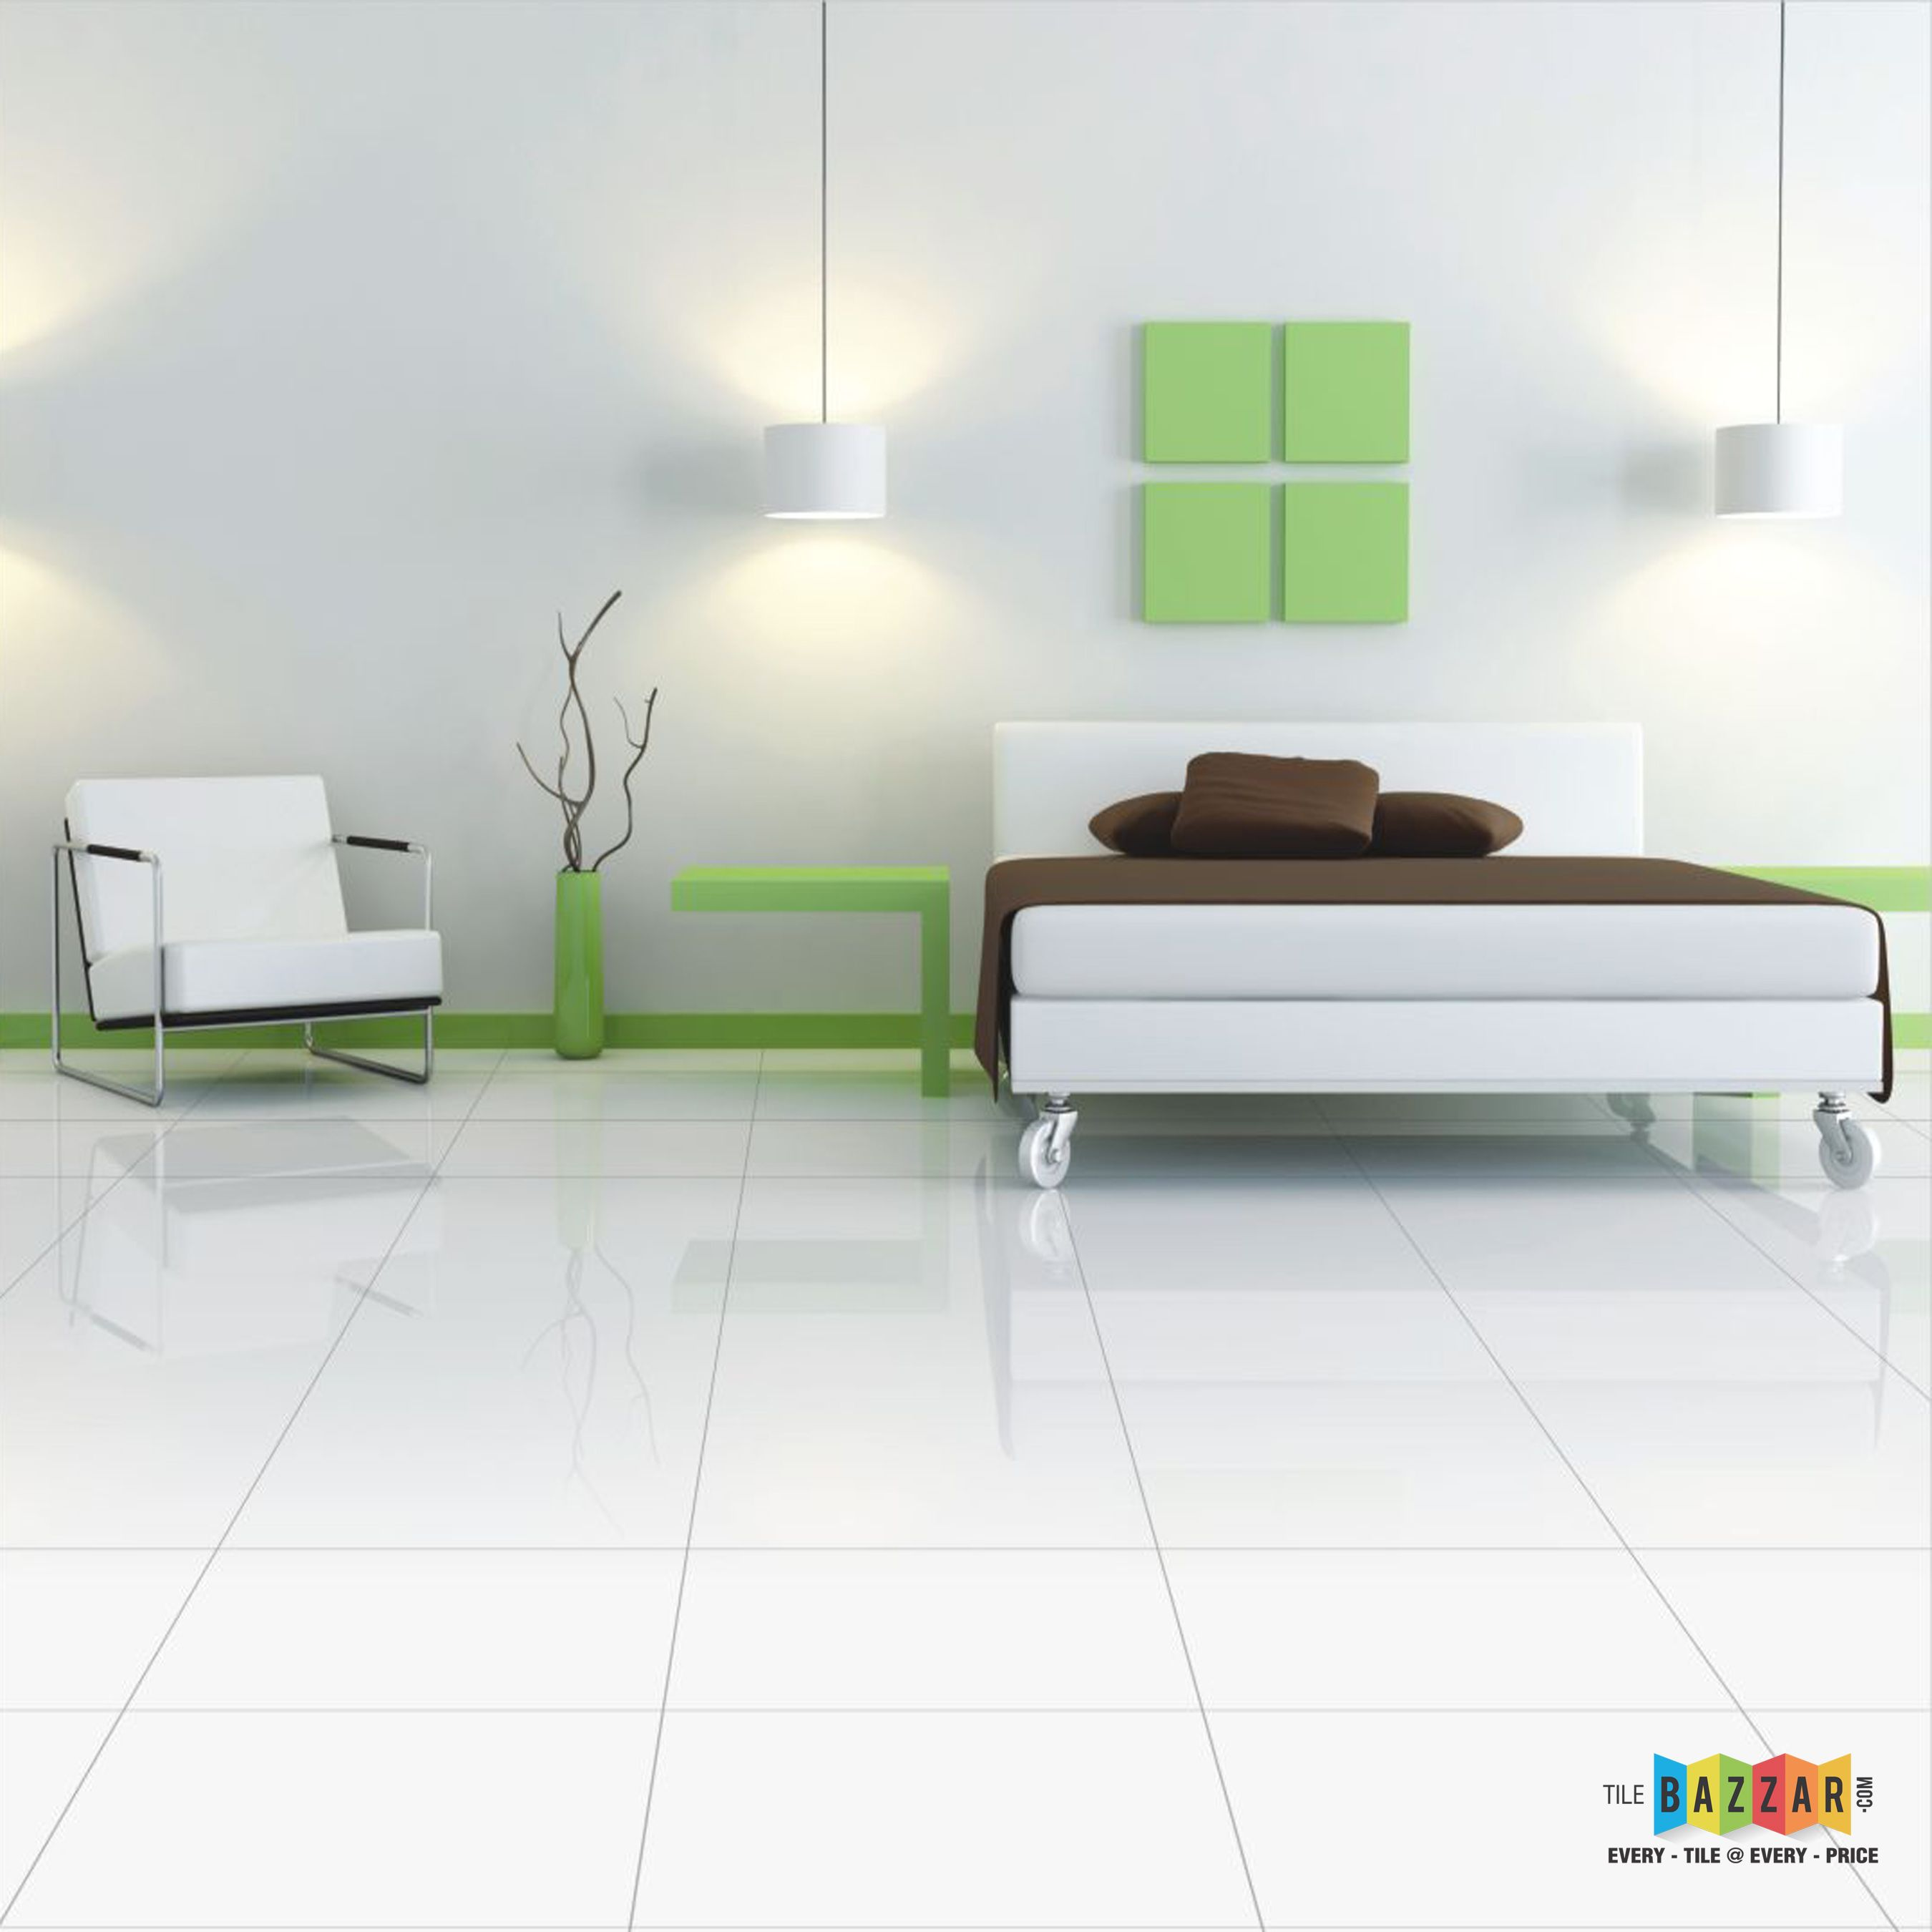 Buy # Wall, # Floor Tiles, # Bathroom, # Kitchen ...